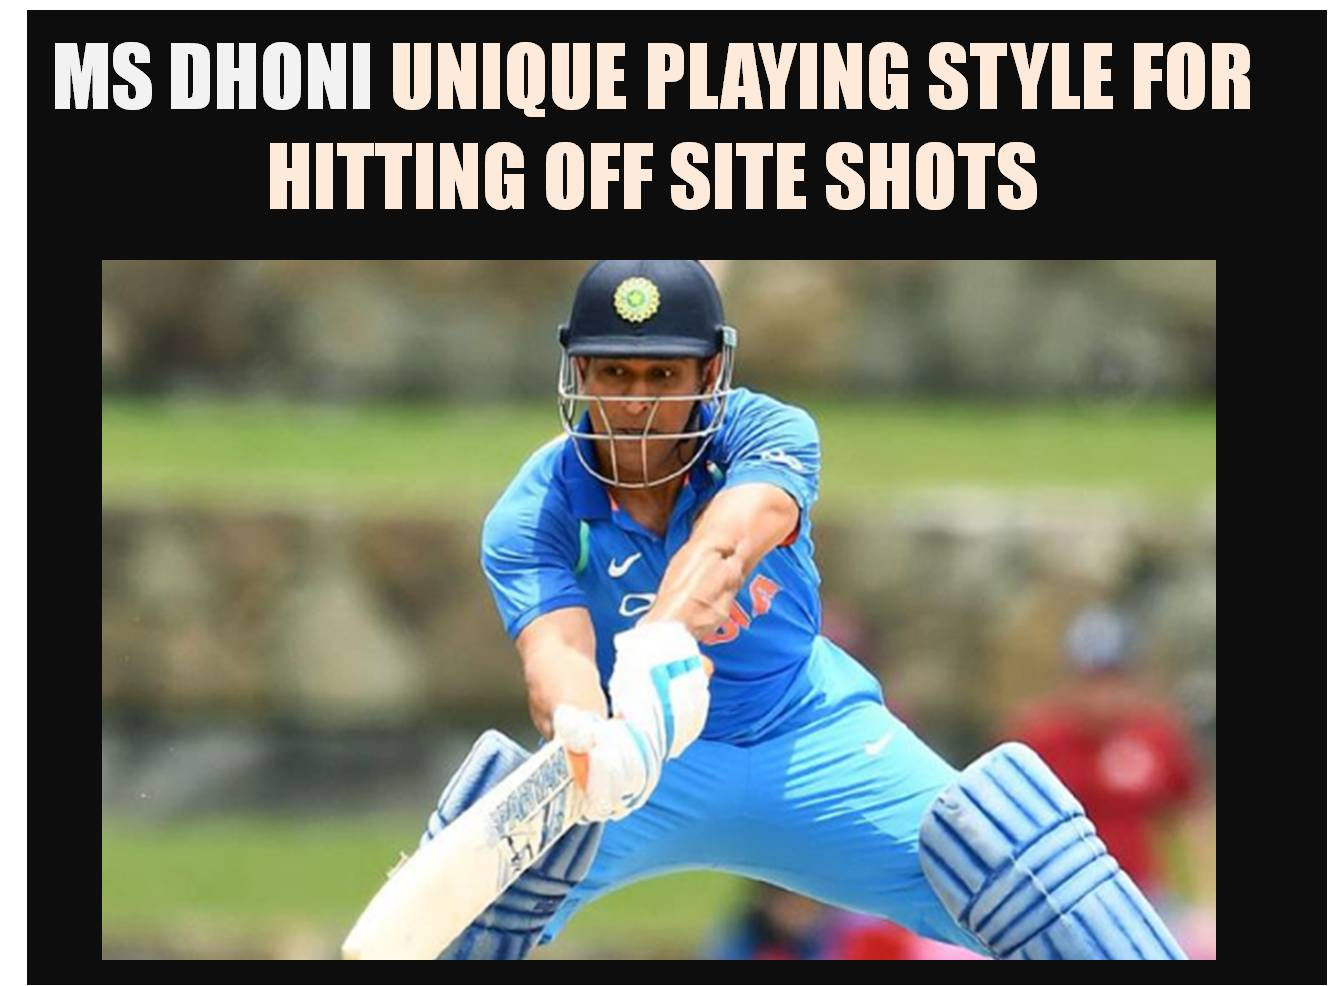 MSDhoni_Unique_Playing_Style_Khelmart2